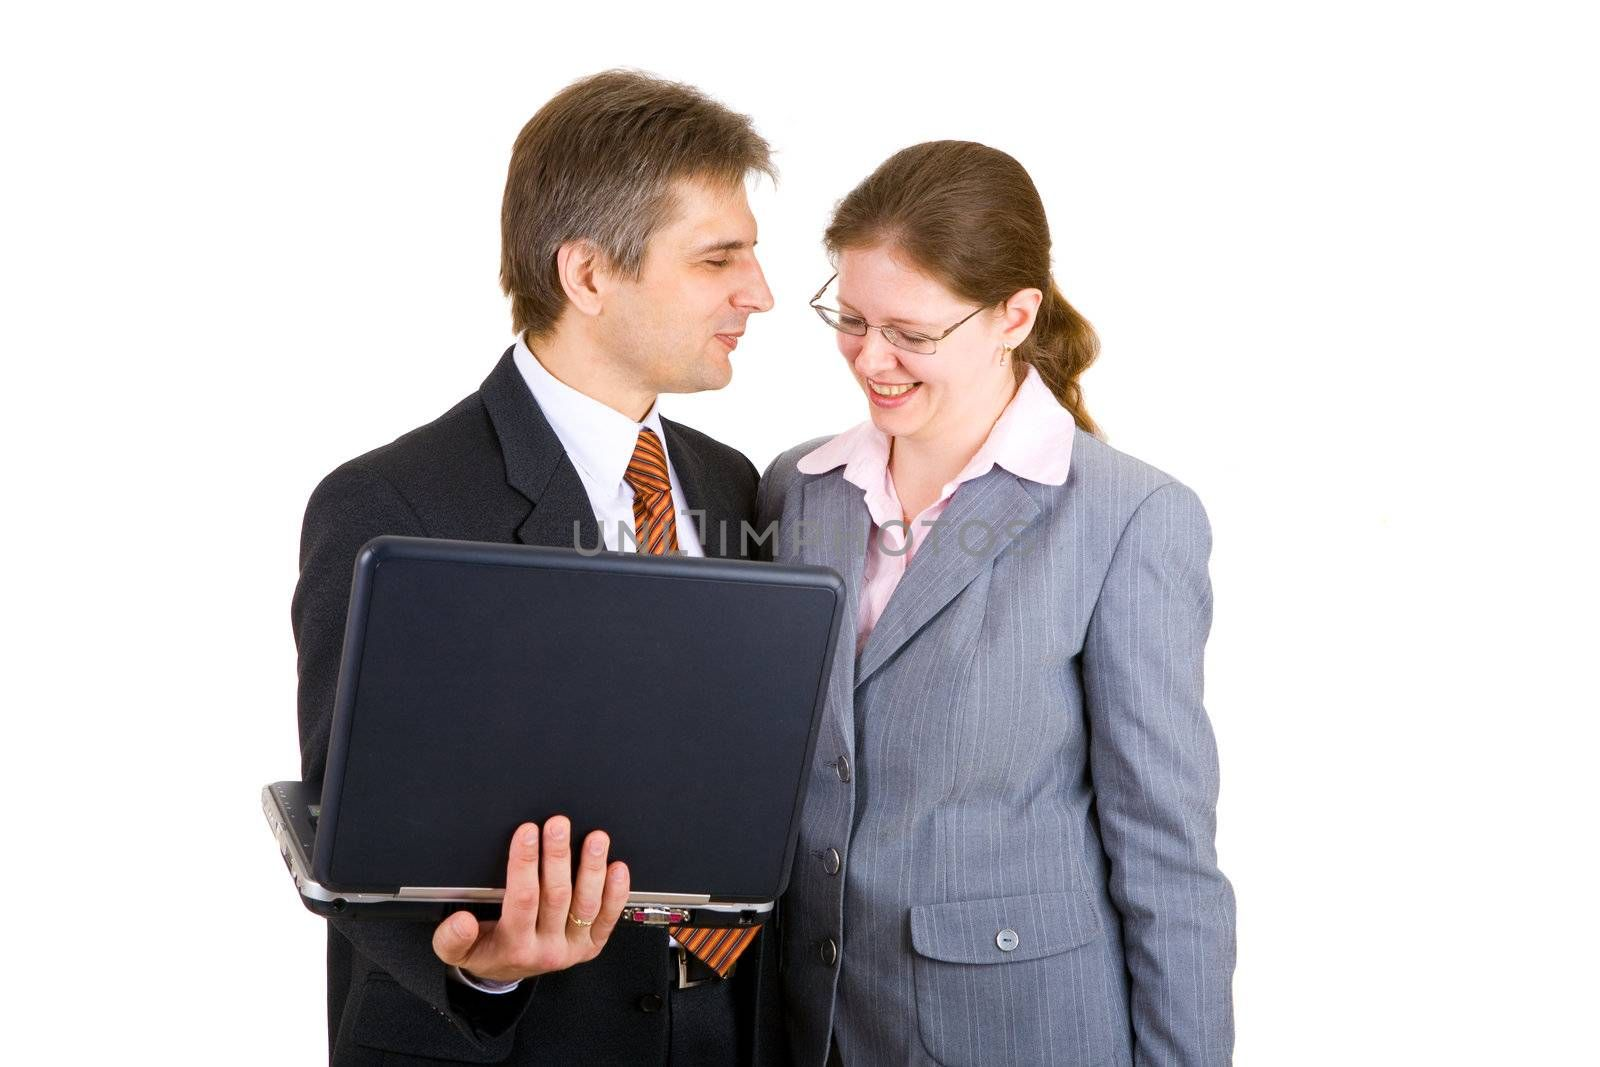 businessman and buisnesswoman together with notebook